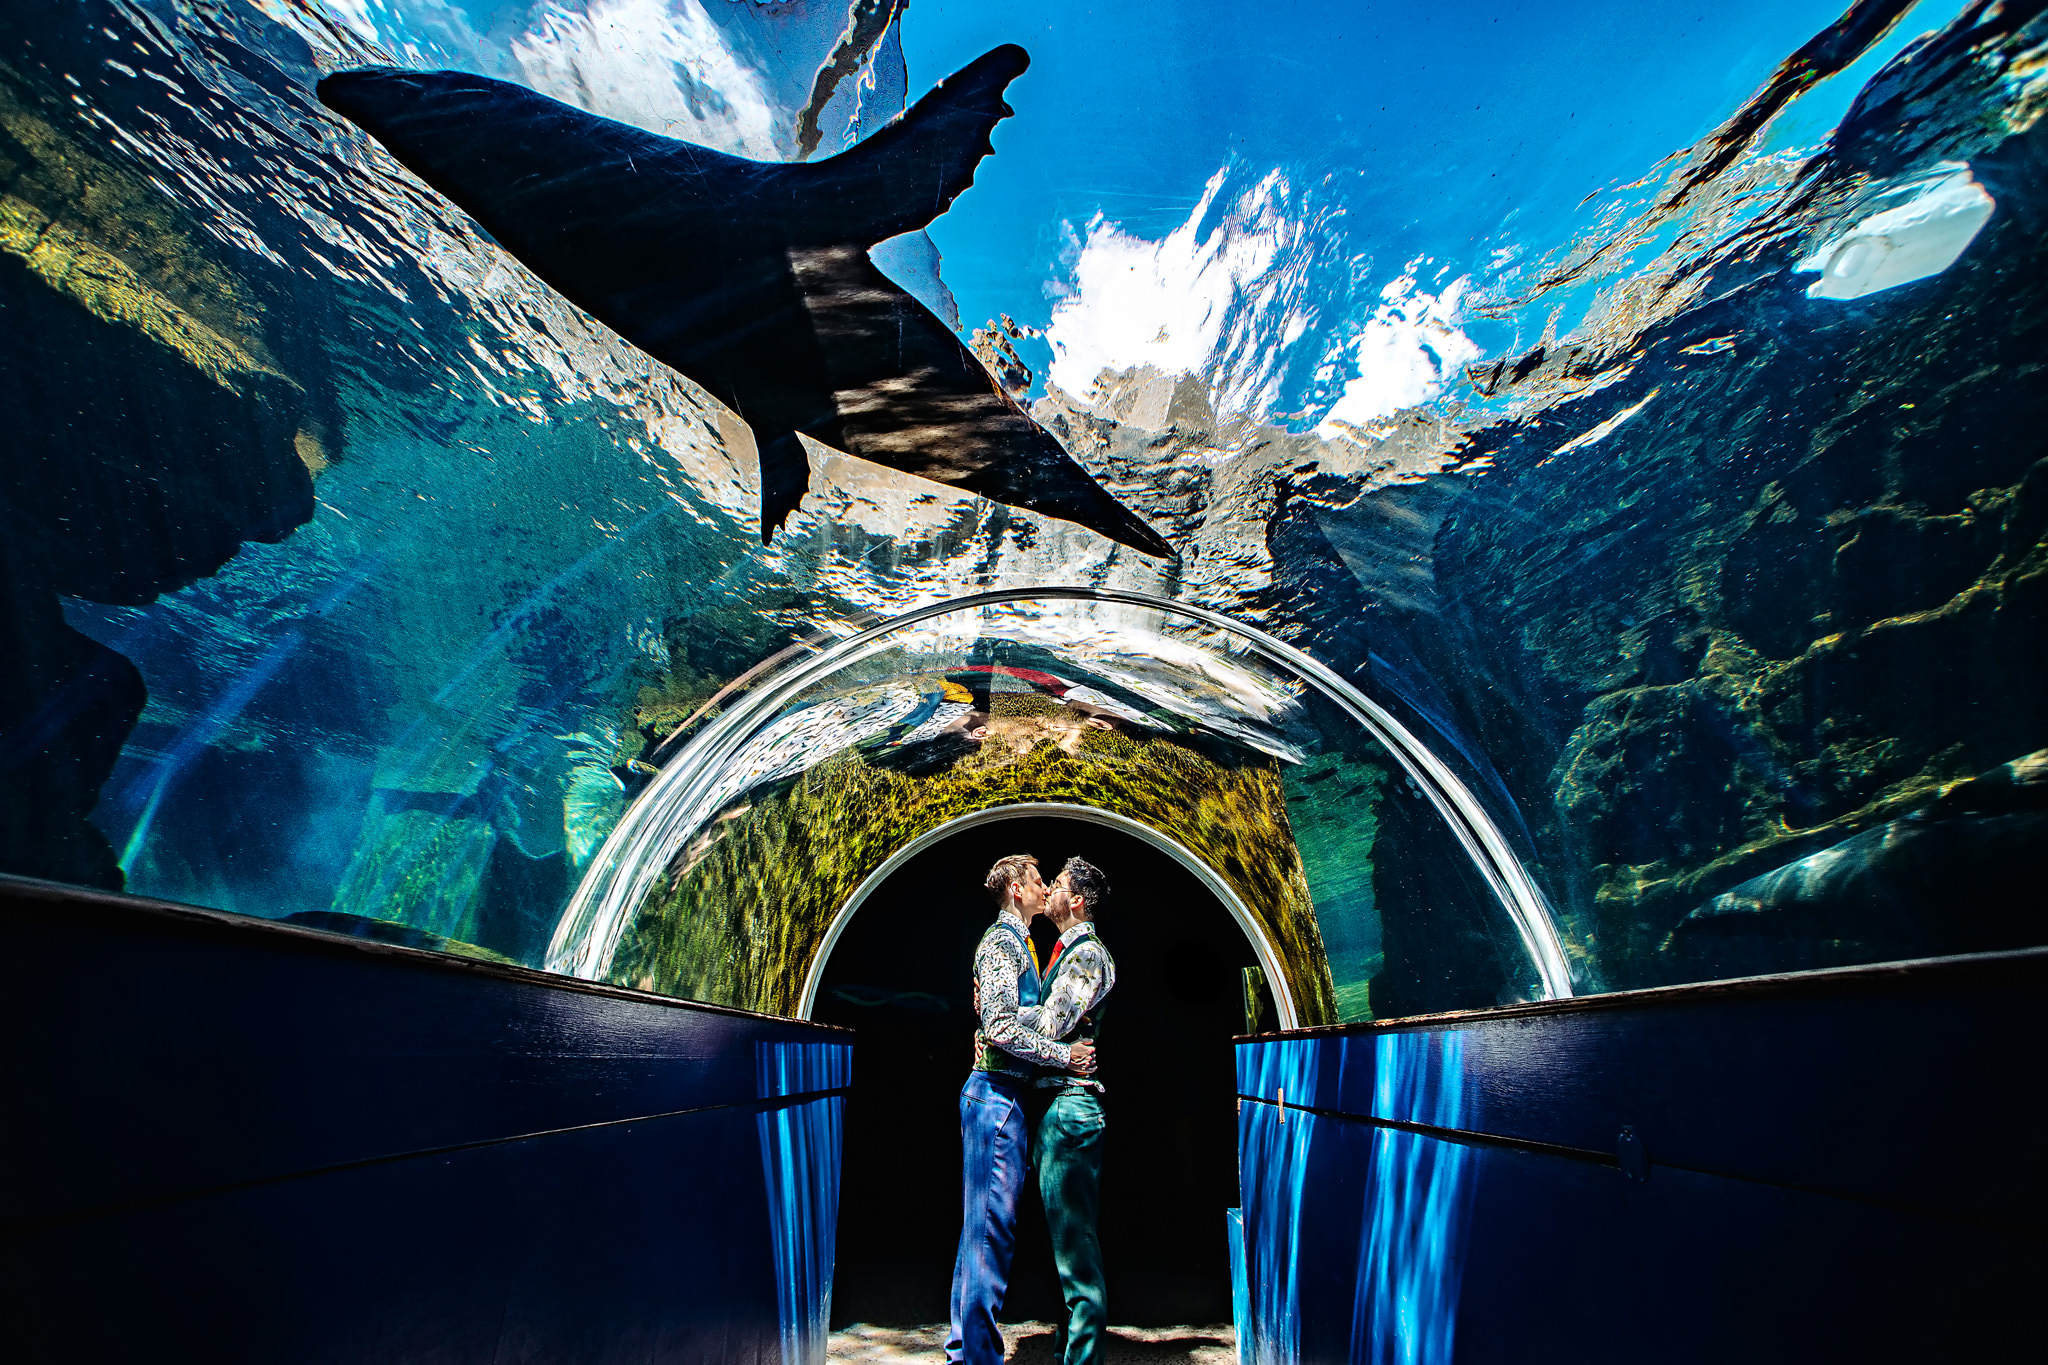 grooms-kissing-underneath-fish-tank-with-dolphin--photo-by-rich-howman